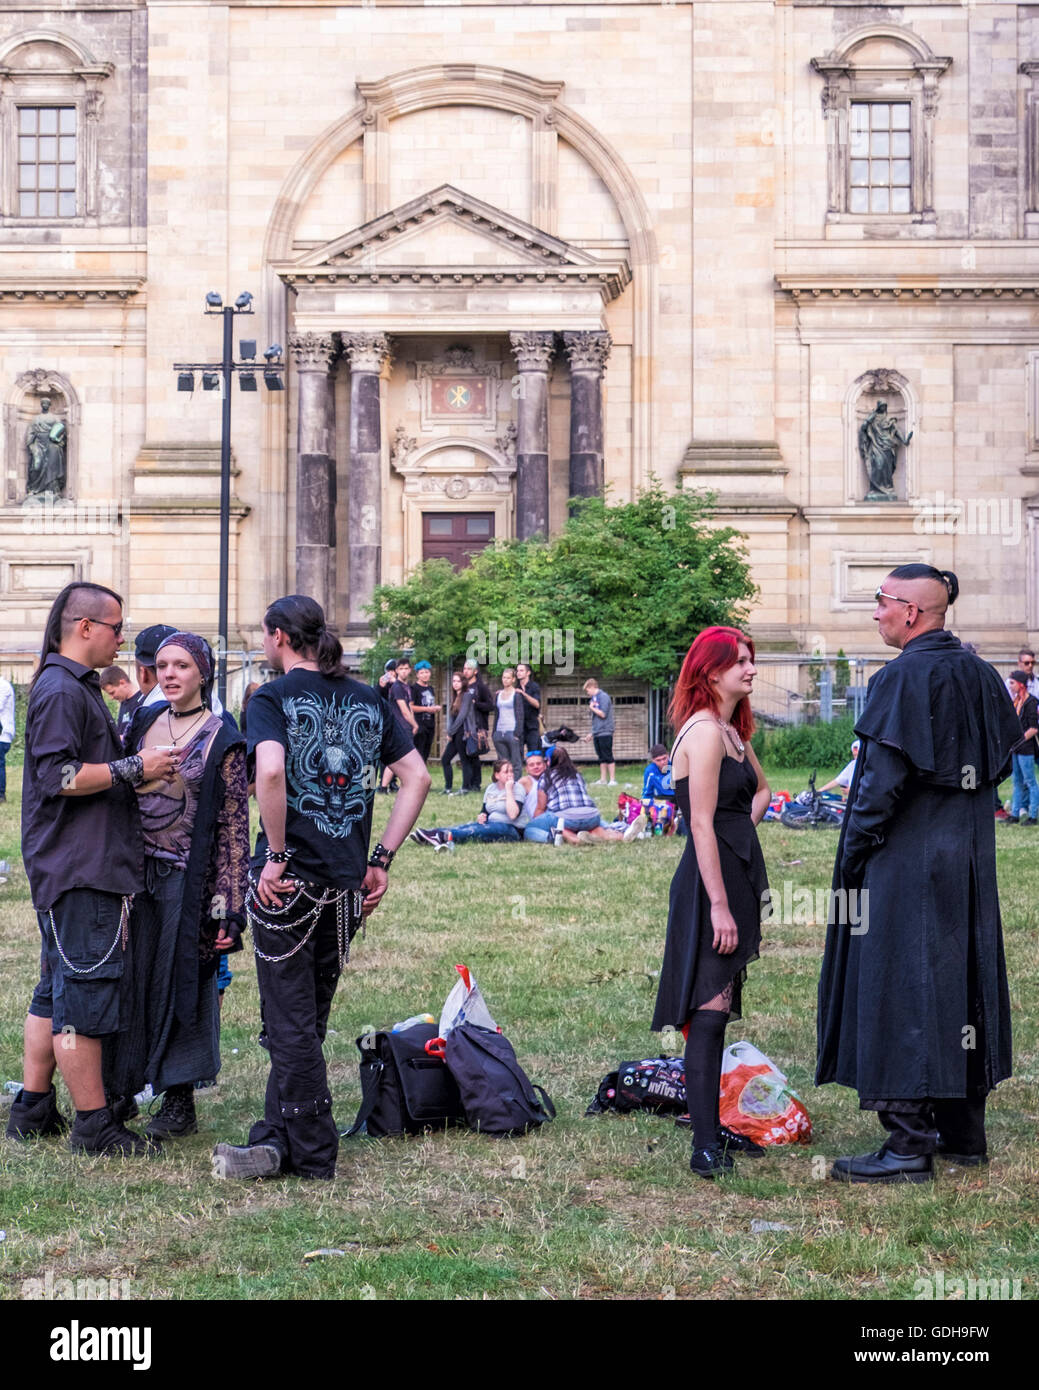 Berlin. Goths, Punks, rockers meet on grass next to the Berliner Dom. People in Alternate clothes, clothing hair, - Stock Image